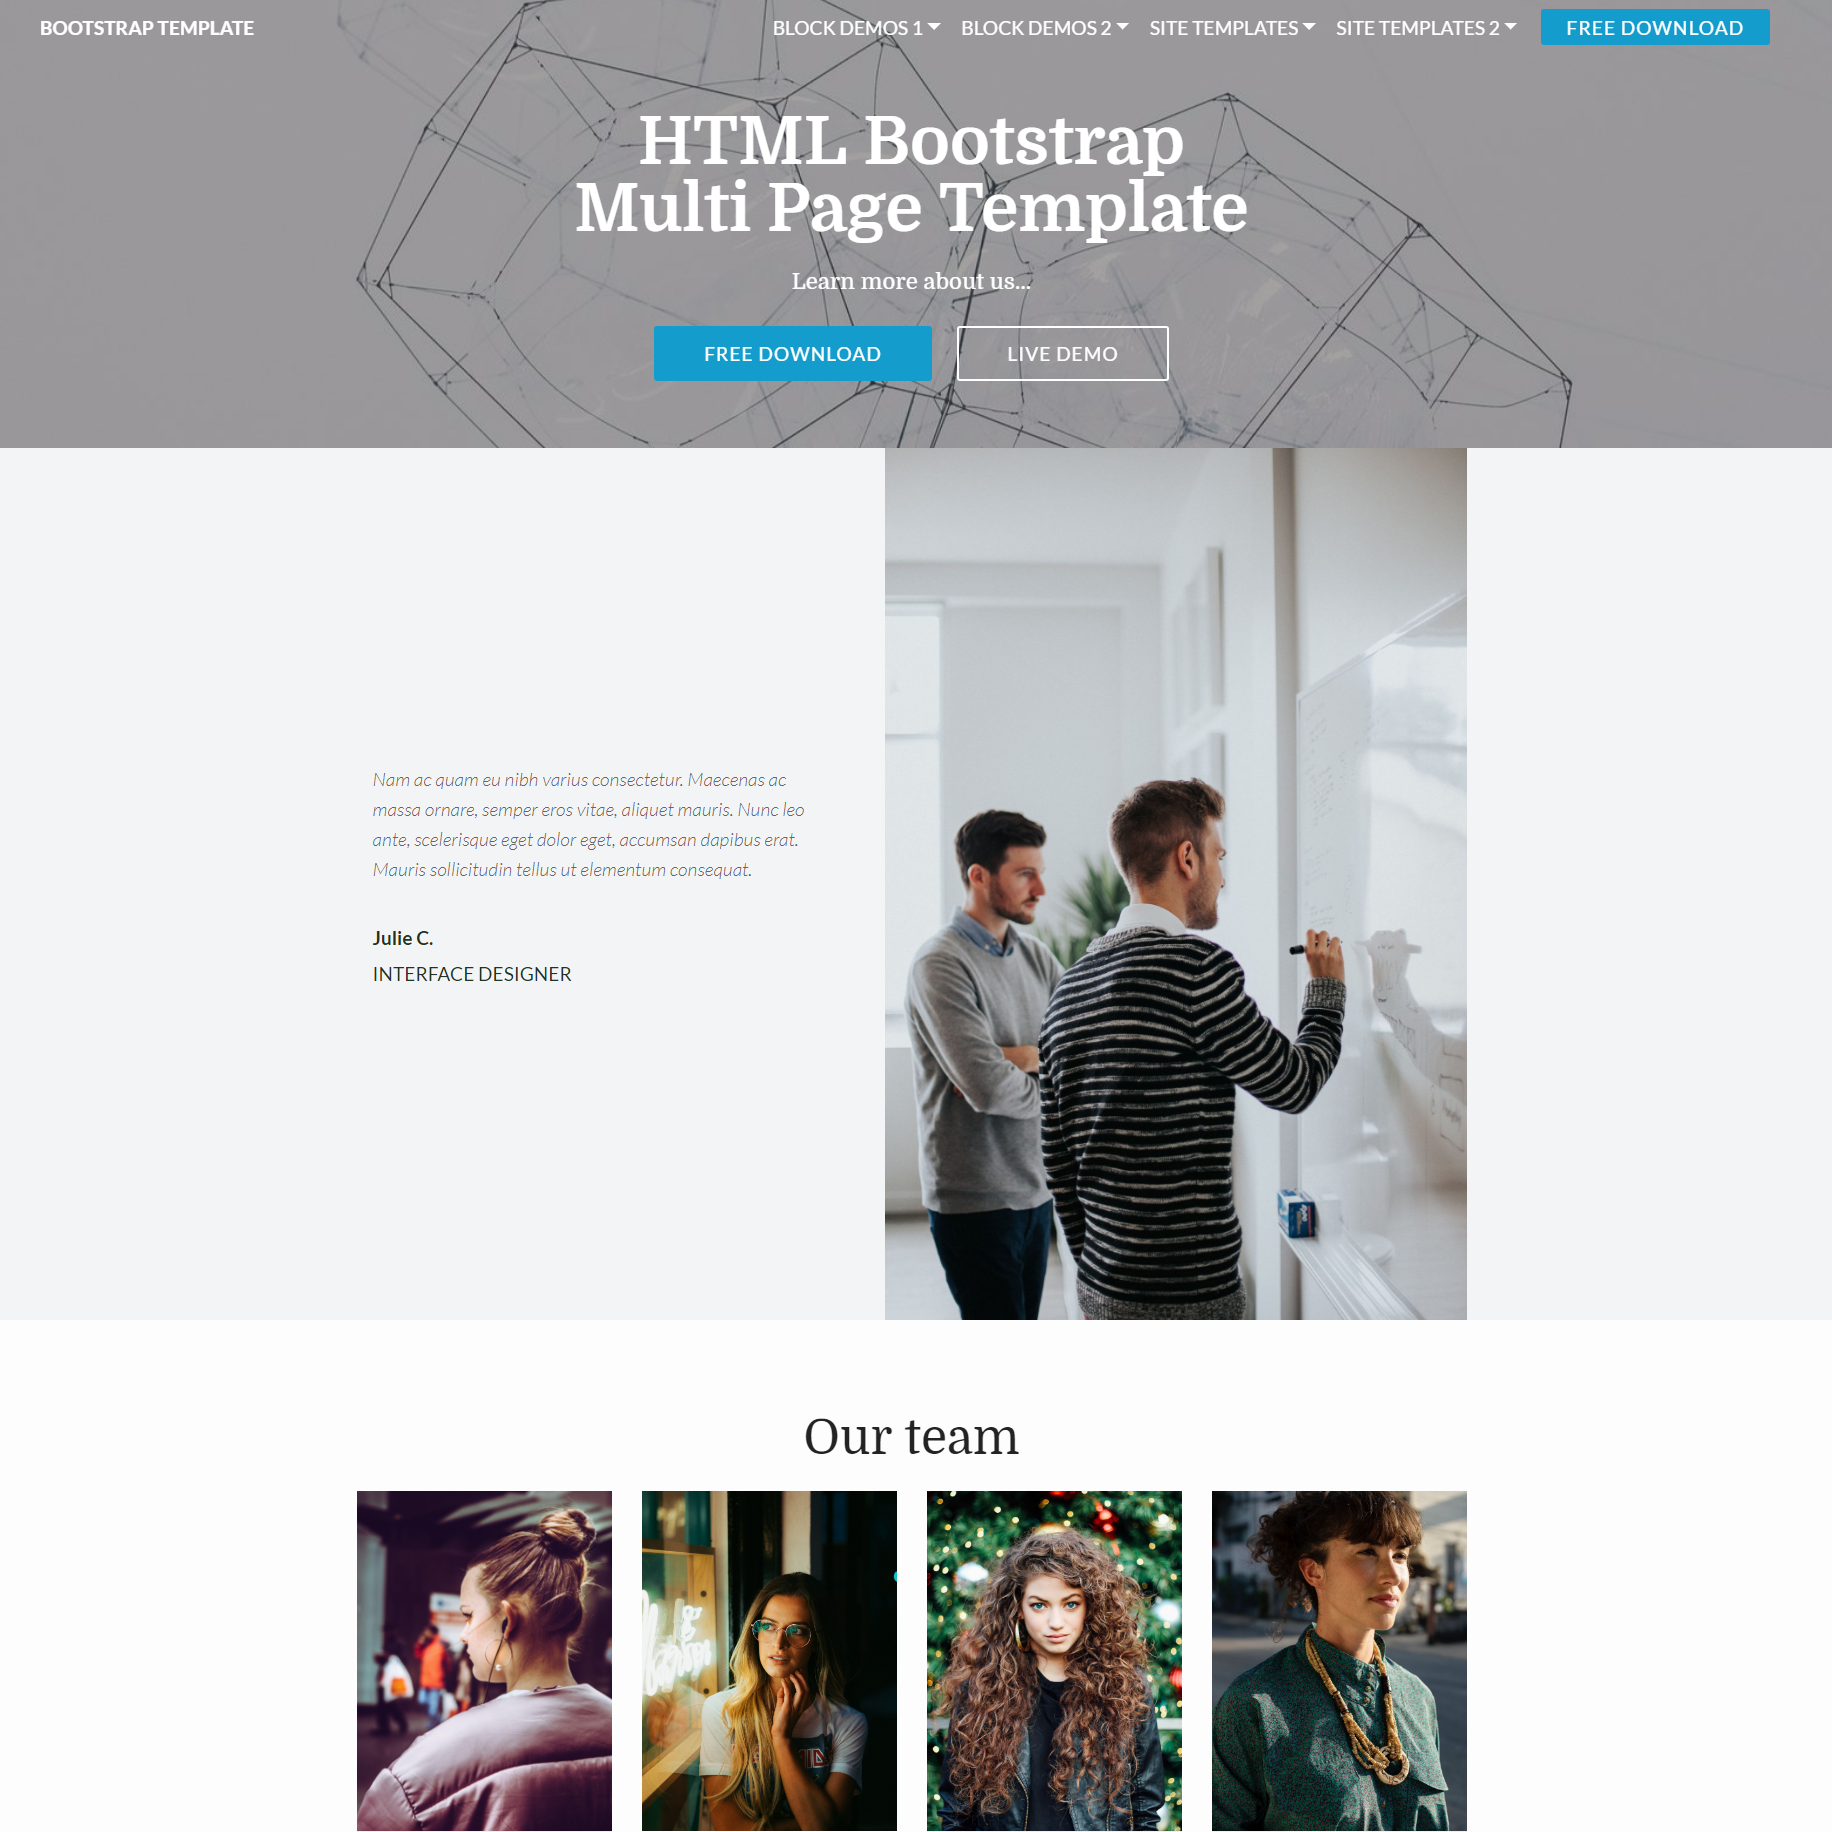 30 excellent free html5 bootstrap templates 2018 html bootstrap multi page templates free theme download accmission Image collections